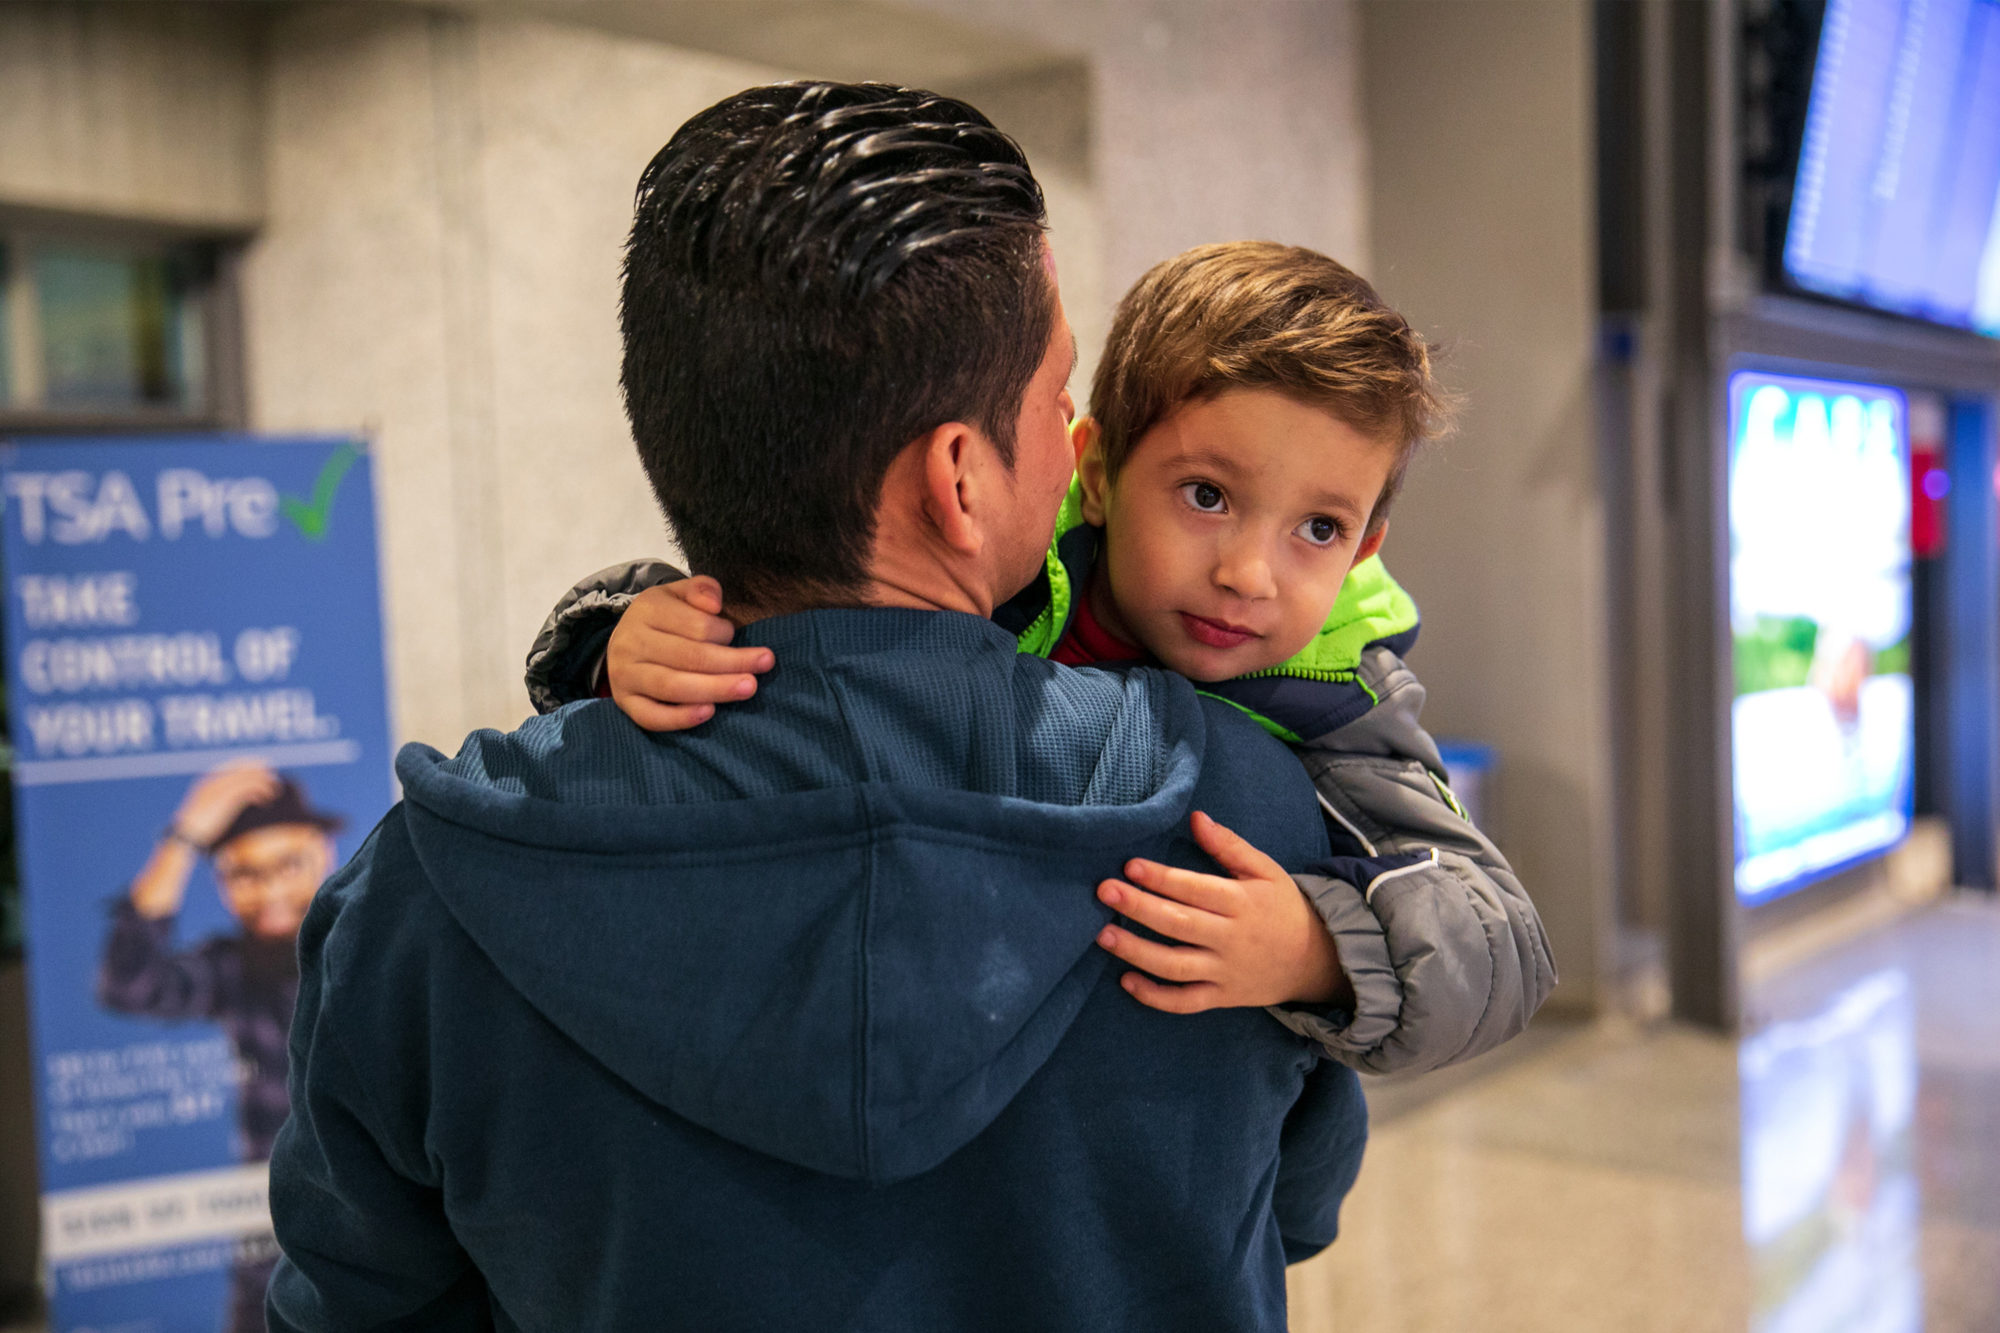 Government Reverses Course, Sending 4-Year-Old Boy Back to His Father